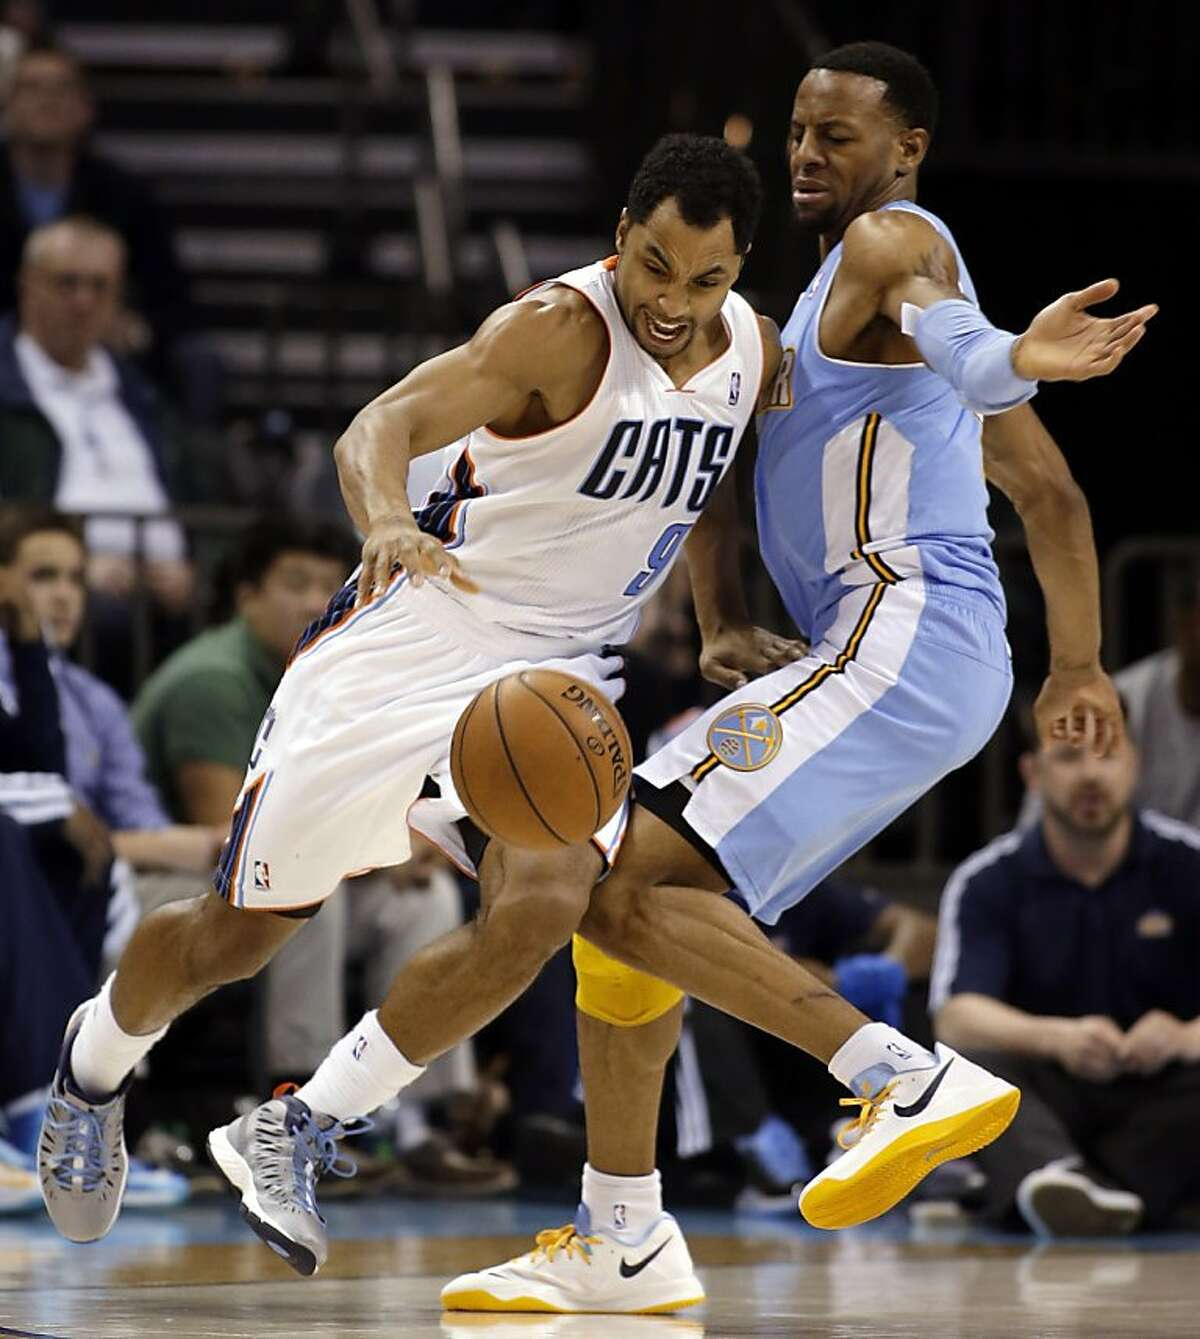 Charlotte Bobcats' Gerald Henderson (9) grimaces as he tries to get around Denver Nuggets' Andre Iguodala during the second half of an NBA basketball game in Charlotte, N.C., Saturday, Feb. 23, 2013. The Nuggets won 113-99. (AP Photo/Bob Leverone)